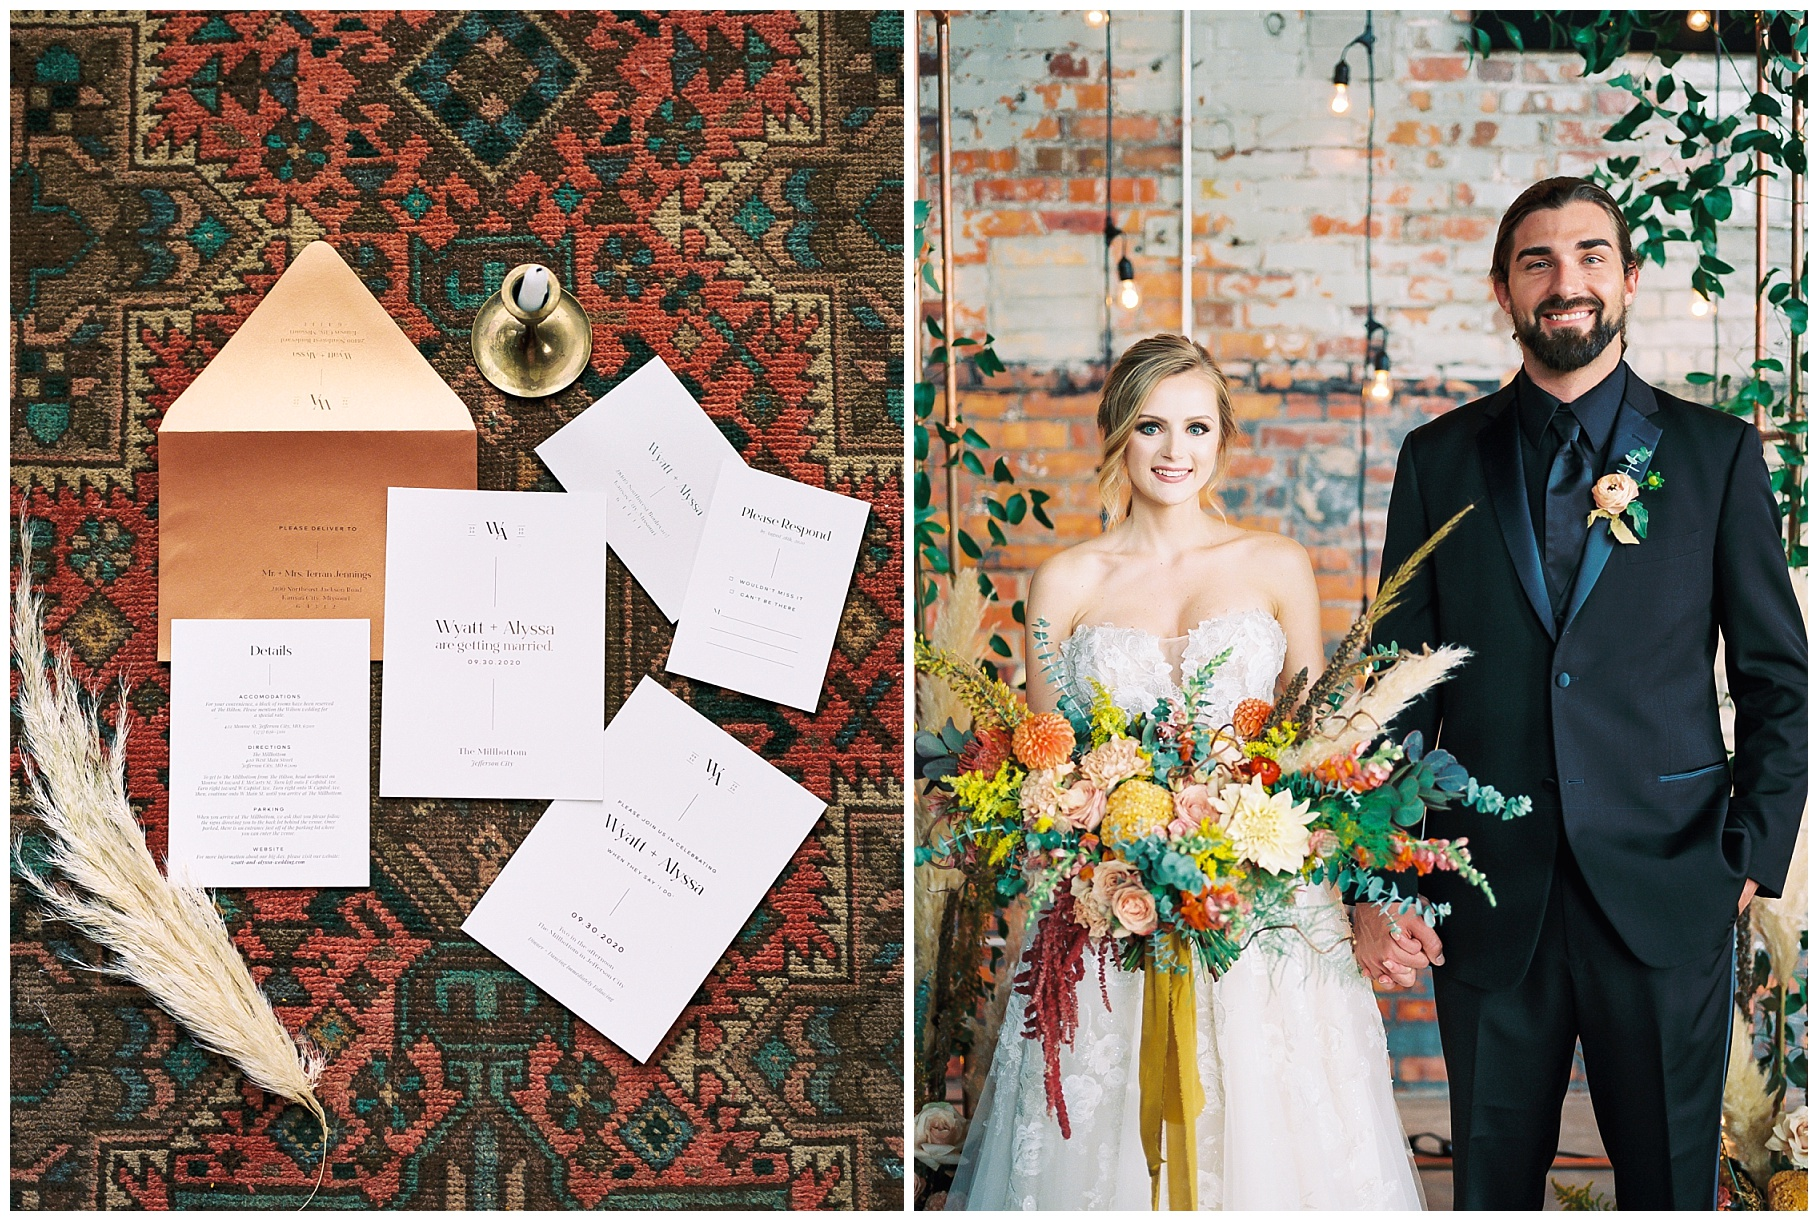 Urban Romance Wedding with Copper Accents at The Millbottom by Kelsi Kliethermes Photography Best Columbia Missouri Wedding Photographer_0021.jpg